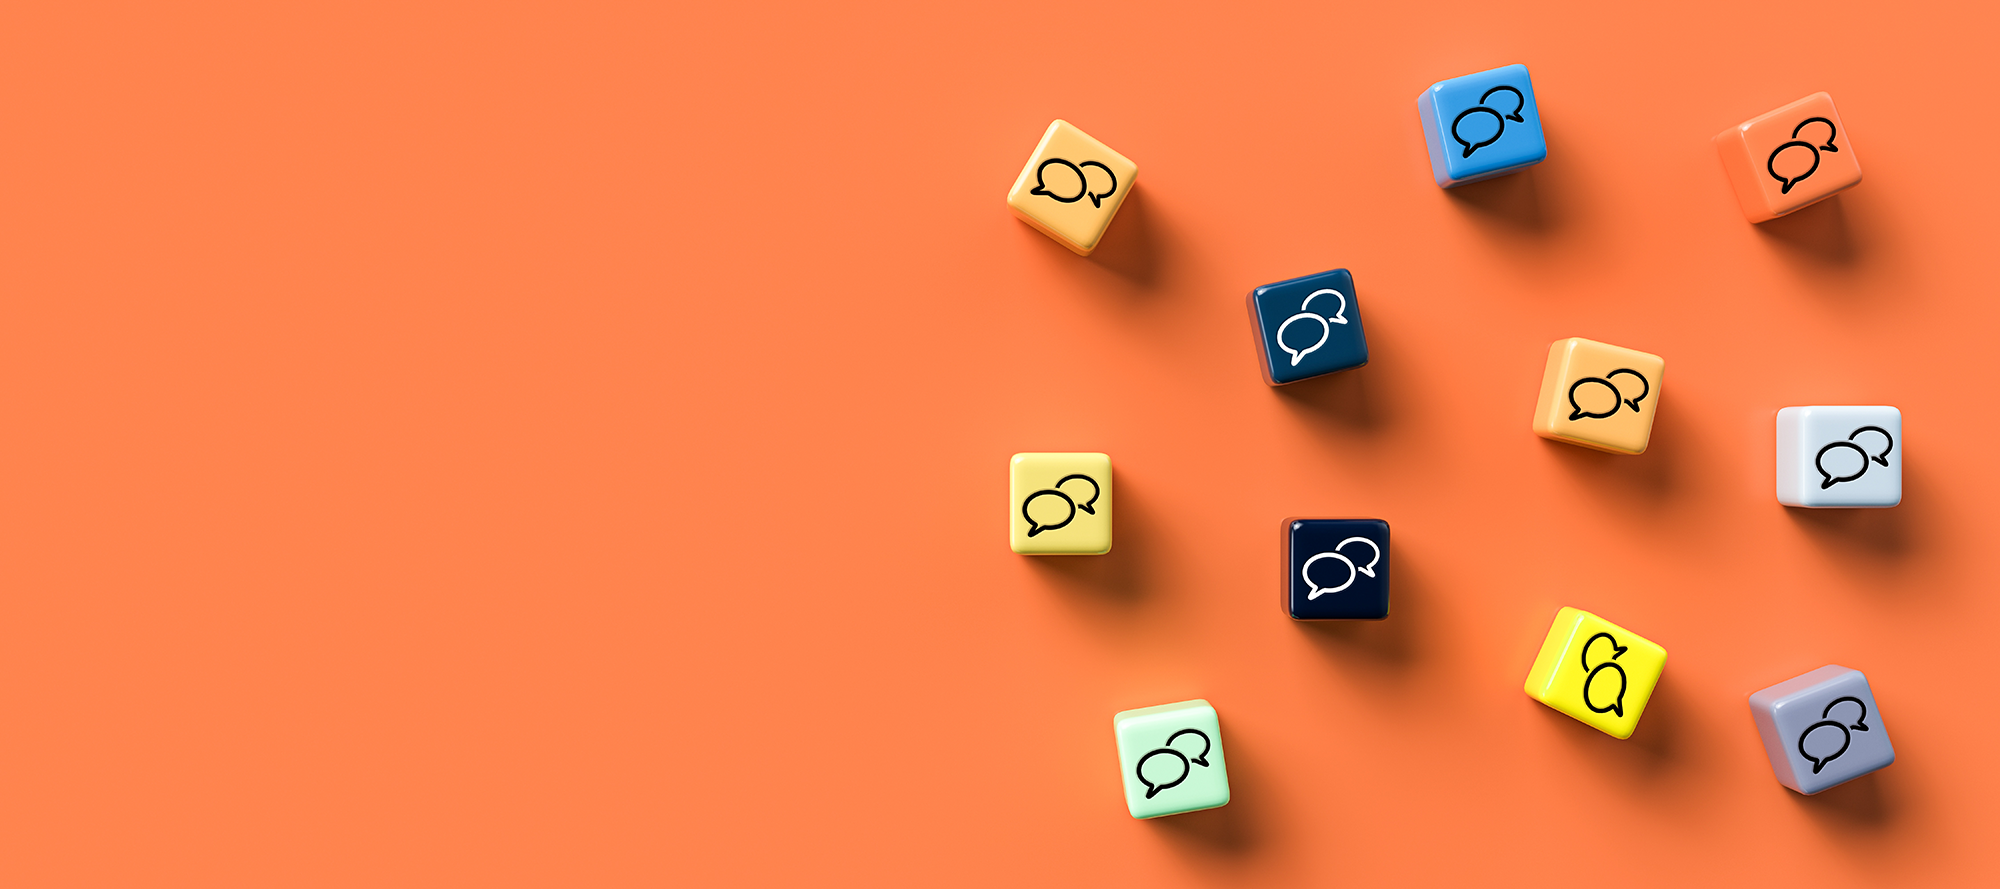 Colourful cubes with speech bubble icons